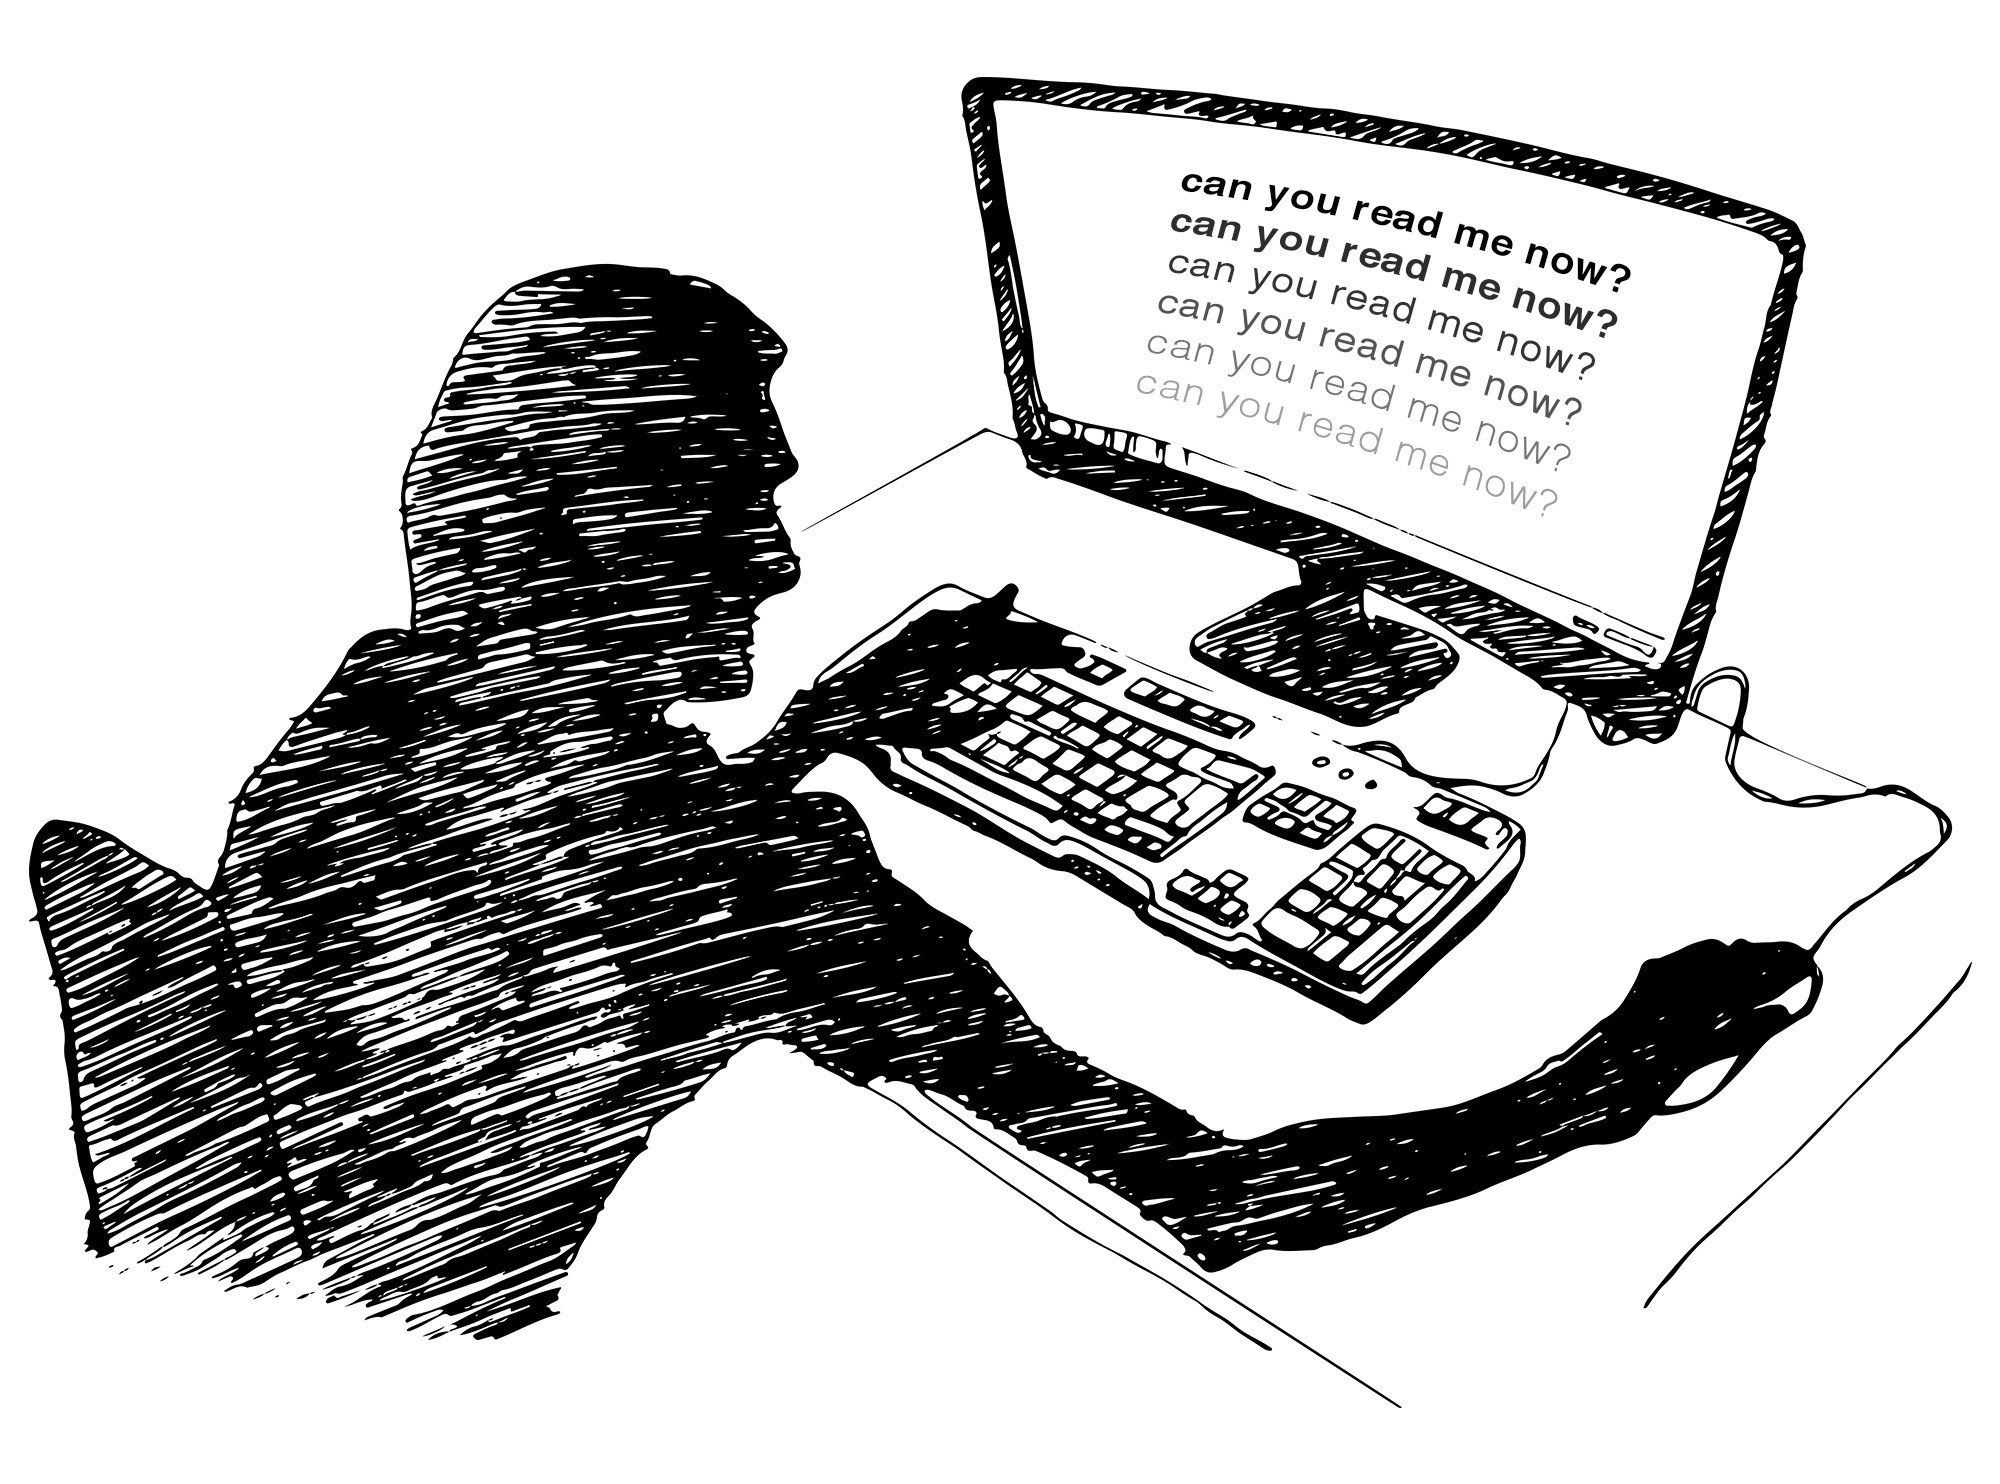 Getting harder and harder to read small print clipart graphic black and white stock How the Web Became Unreadable   WIRED graphic black and white stock